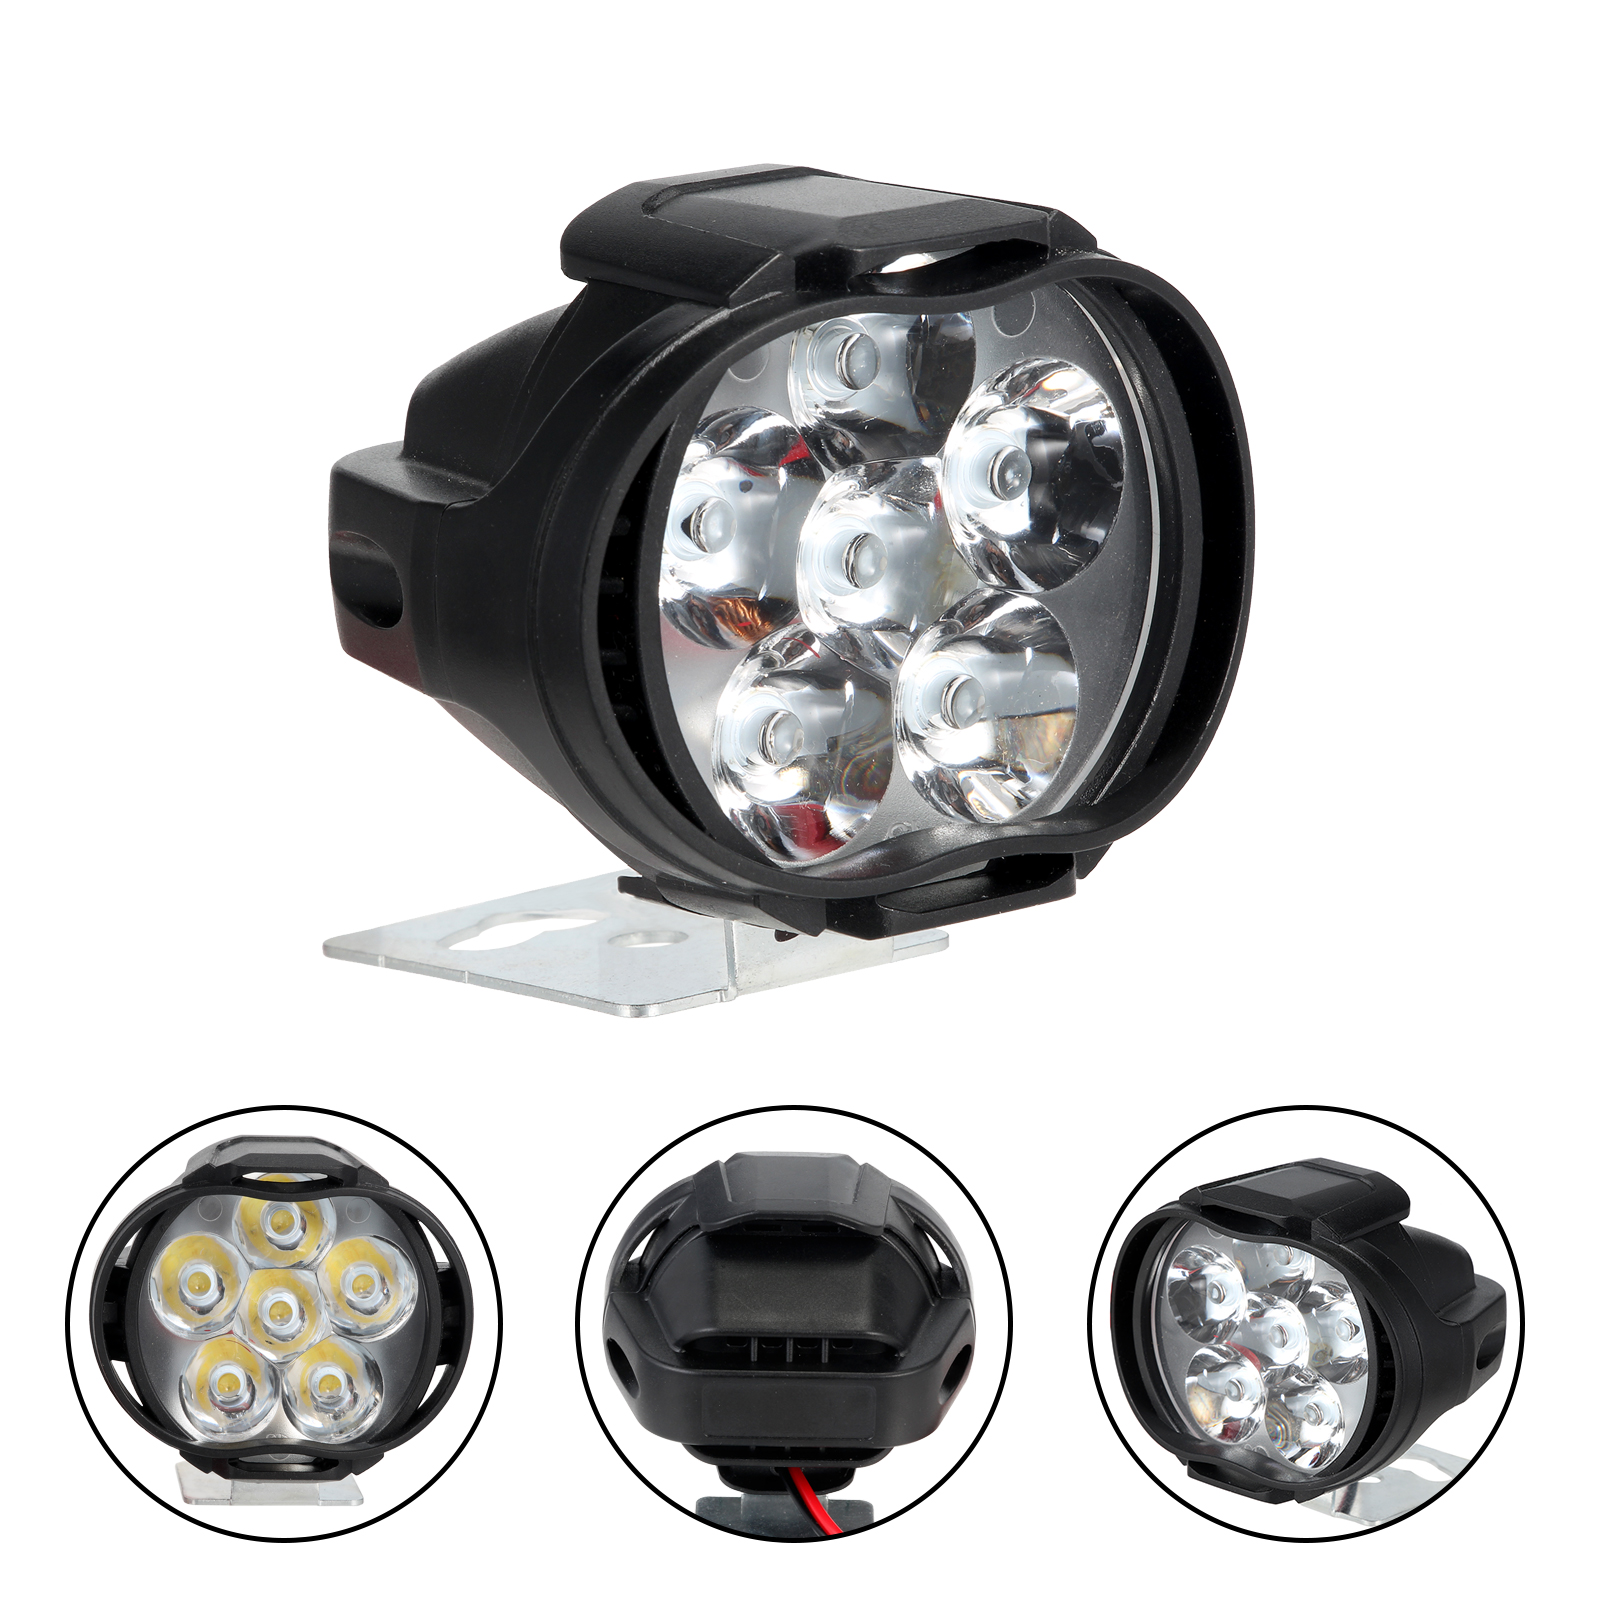 15W Motorcycle LED Light Fog Spot Headlight Working Light For Honda Suzuki KTM